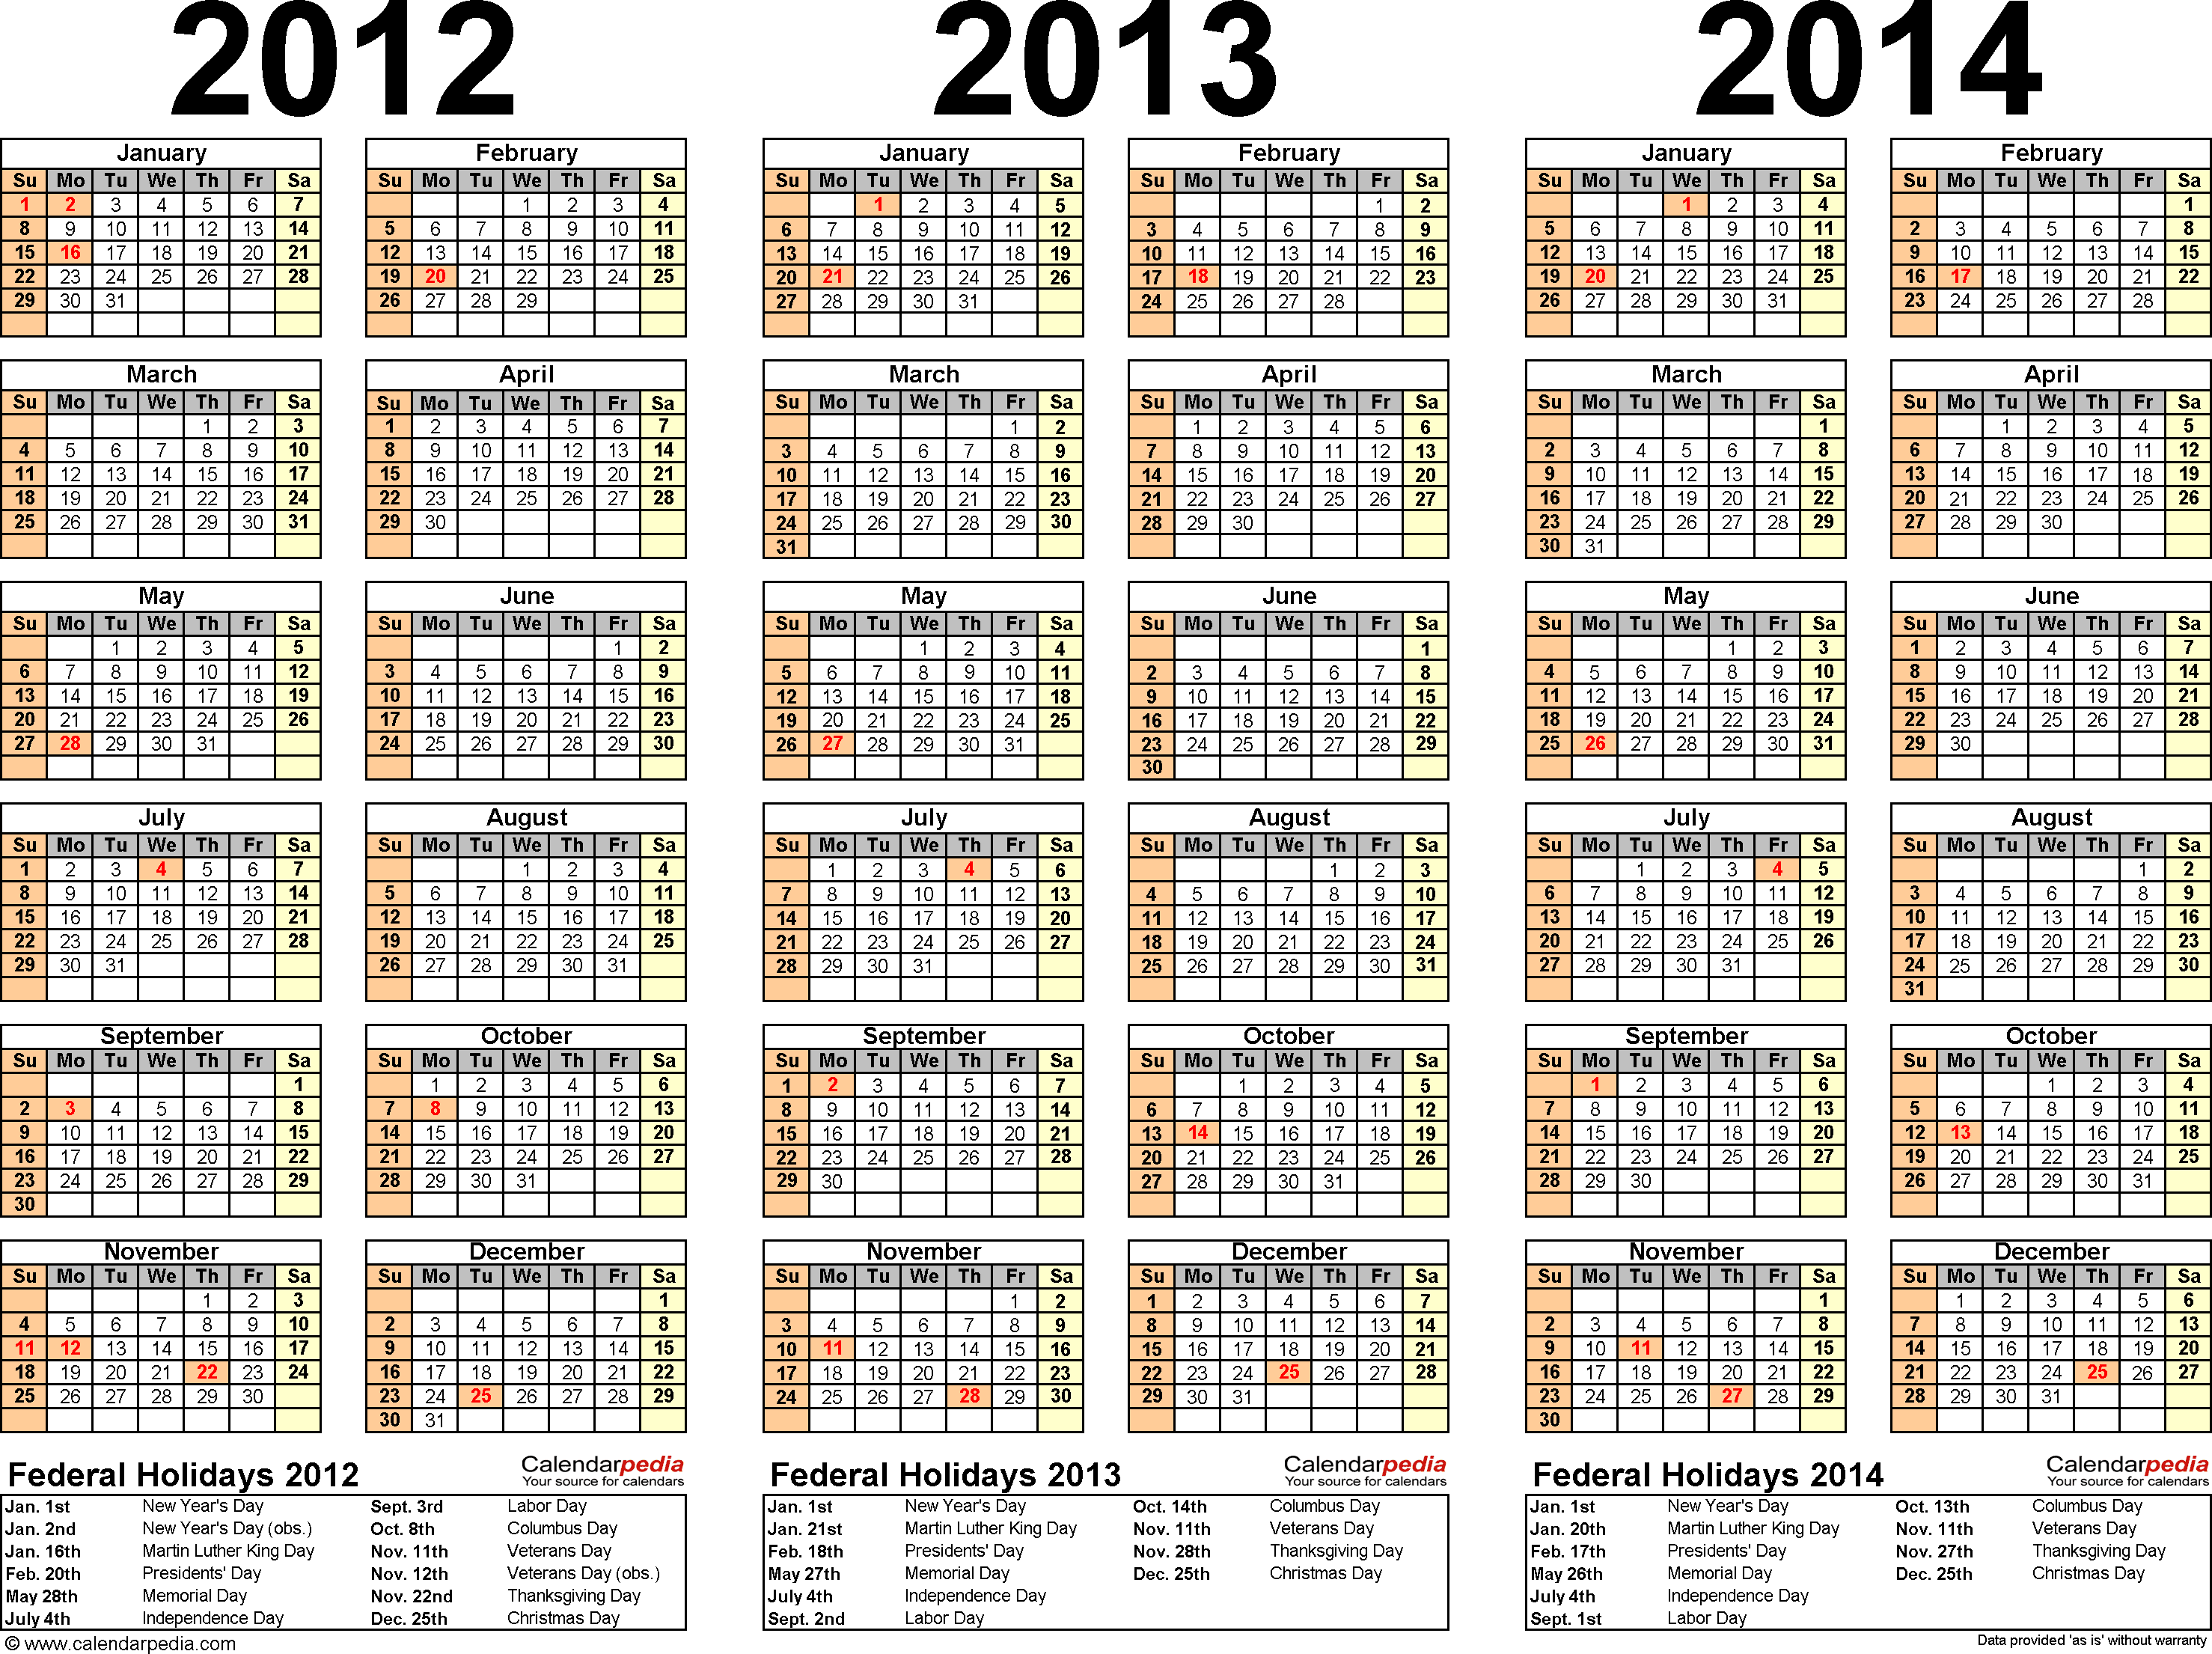 Template 2: Word template for three year calendar 2012-2014 (landscape orientation, 1 page)